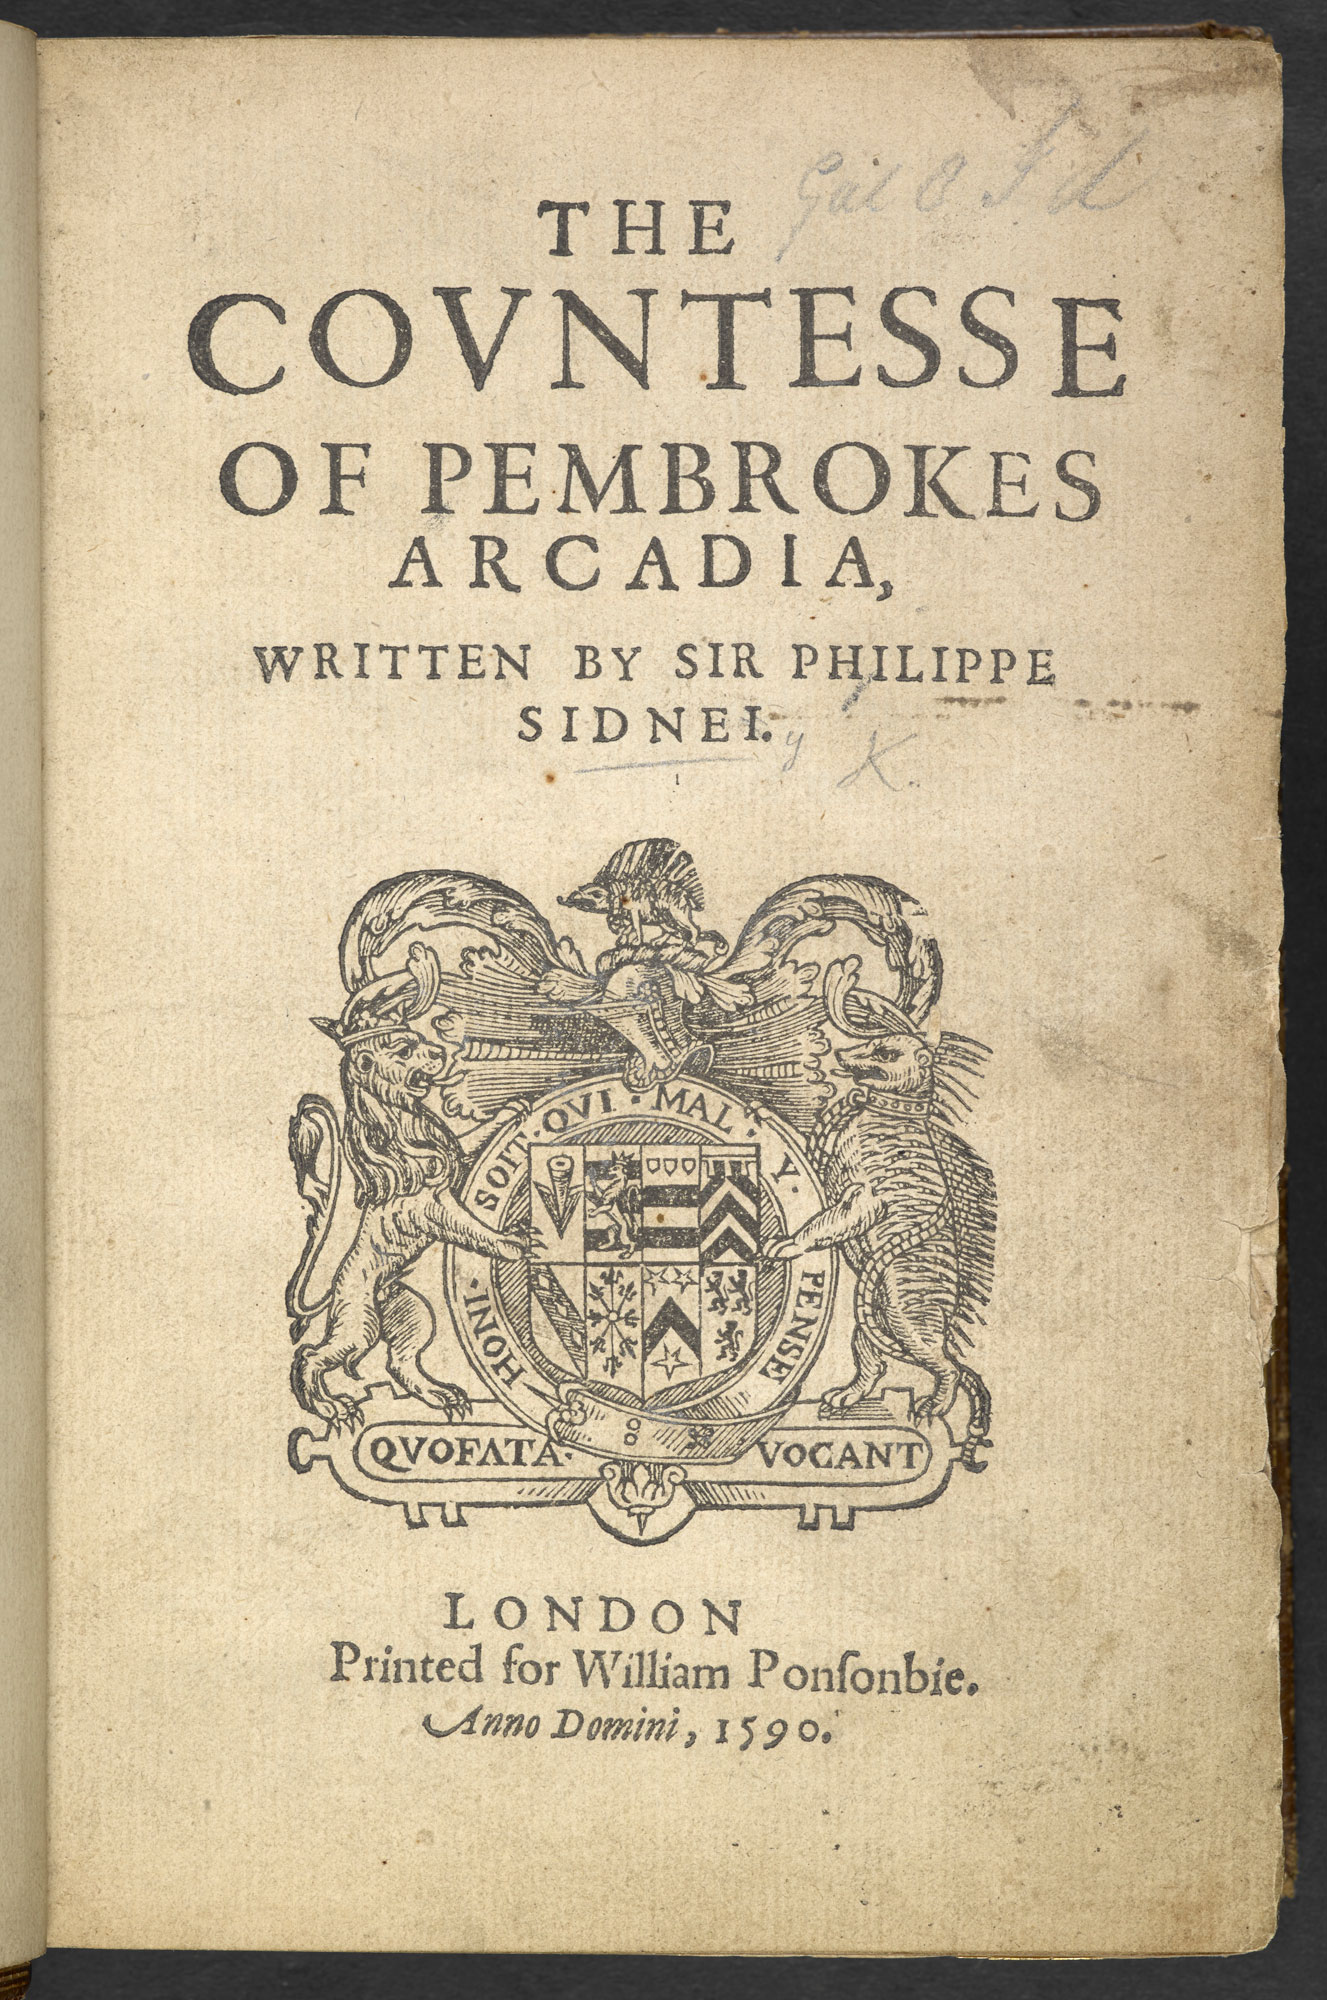 The Countesse of Pembroke's Arcadia by Philip Sidney, 1590